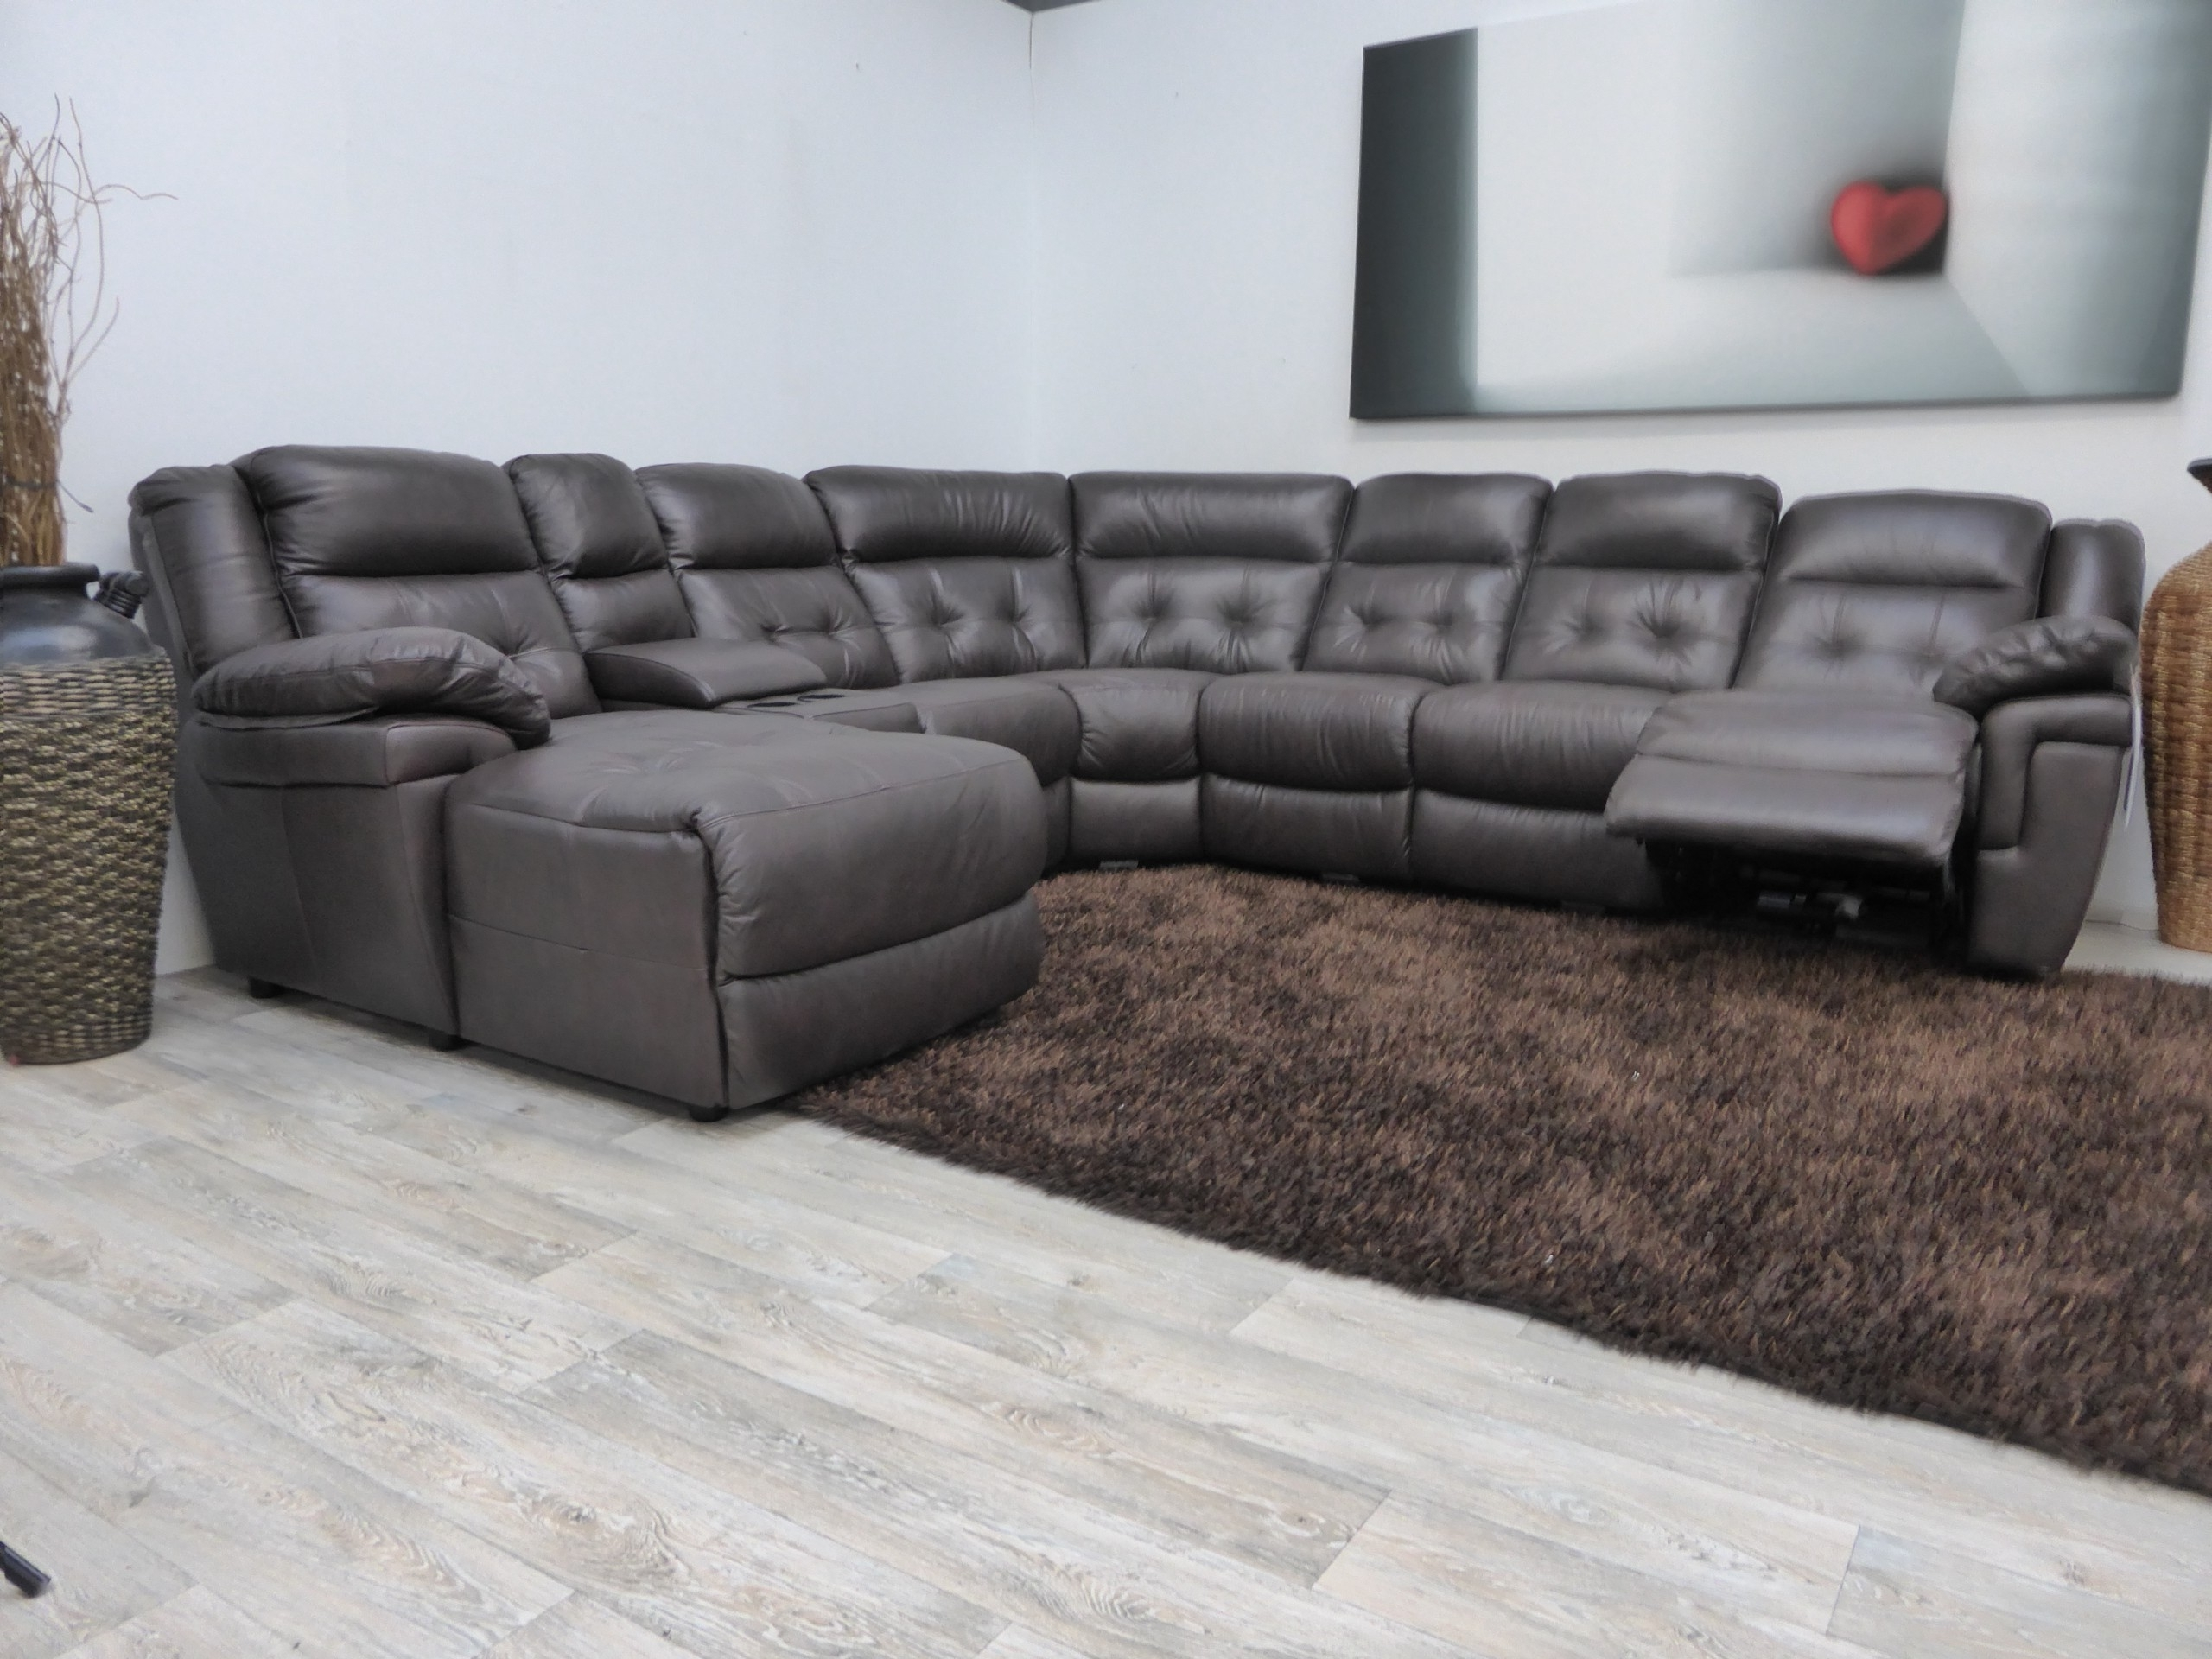 Red Leather Sectional Sofas With Recliners With Regard To Current Furniture : Blue Leather Sectional Sofa And White Cushions Added (View 12 of 15)